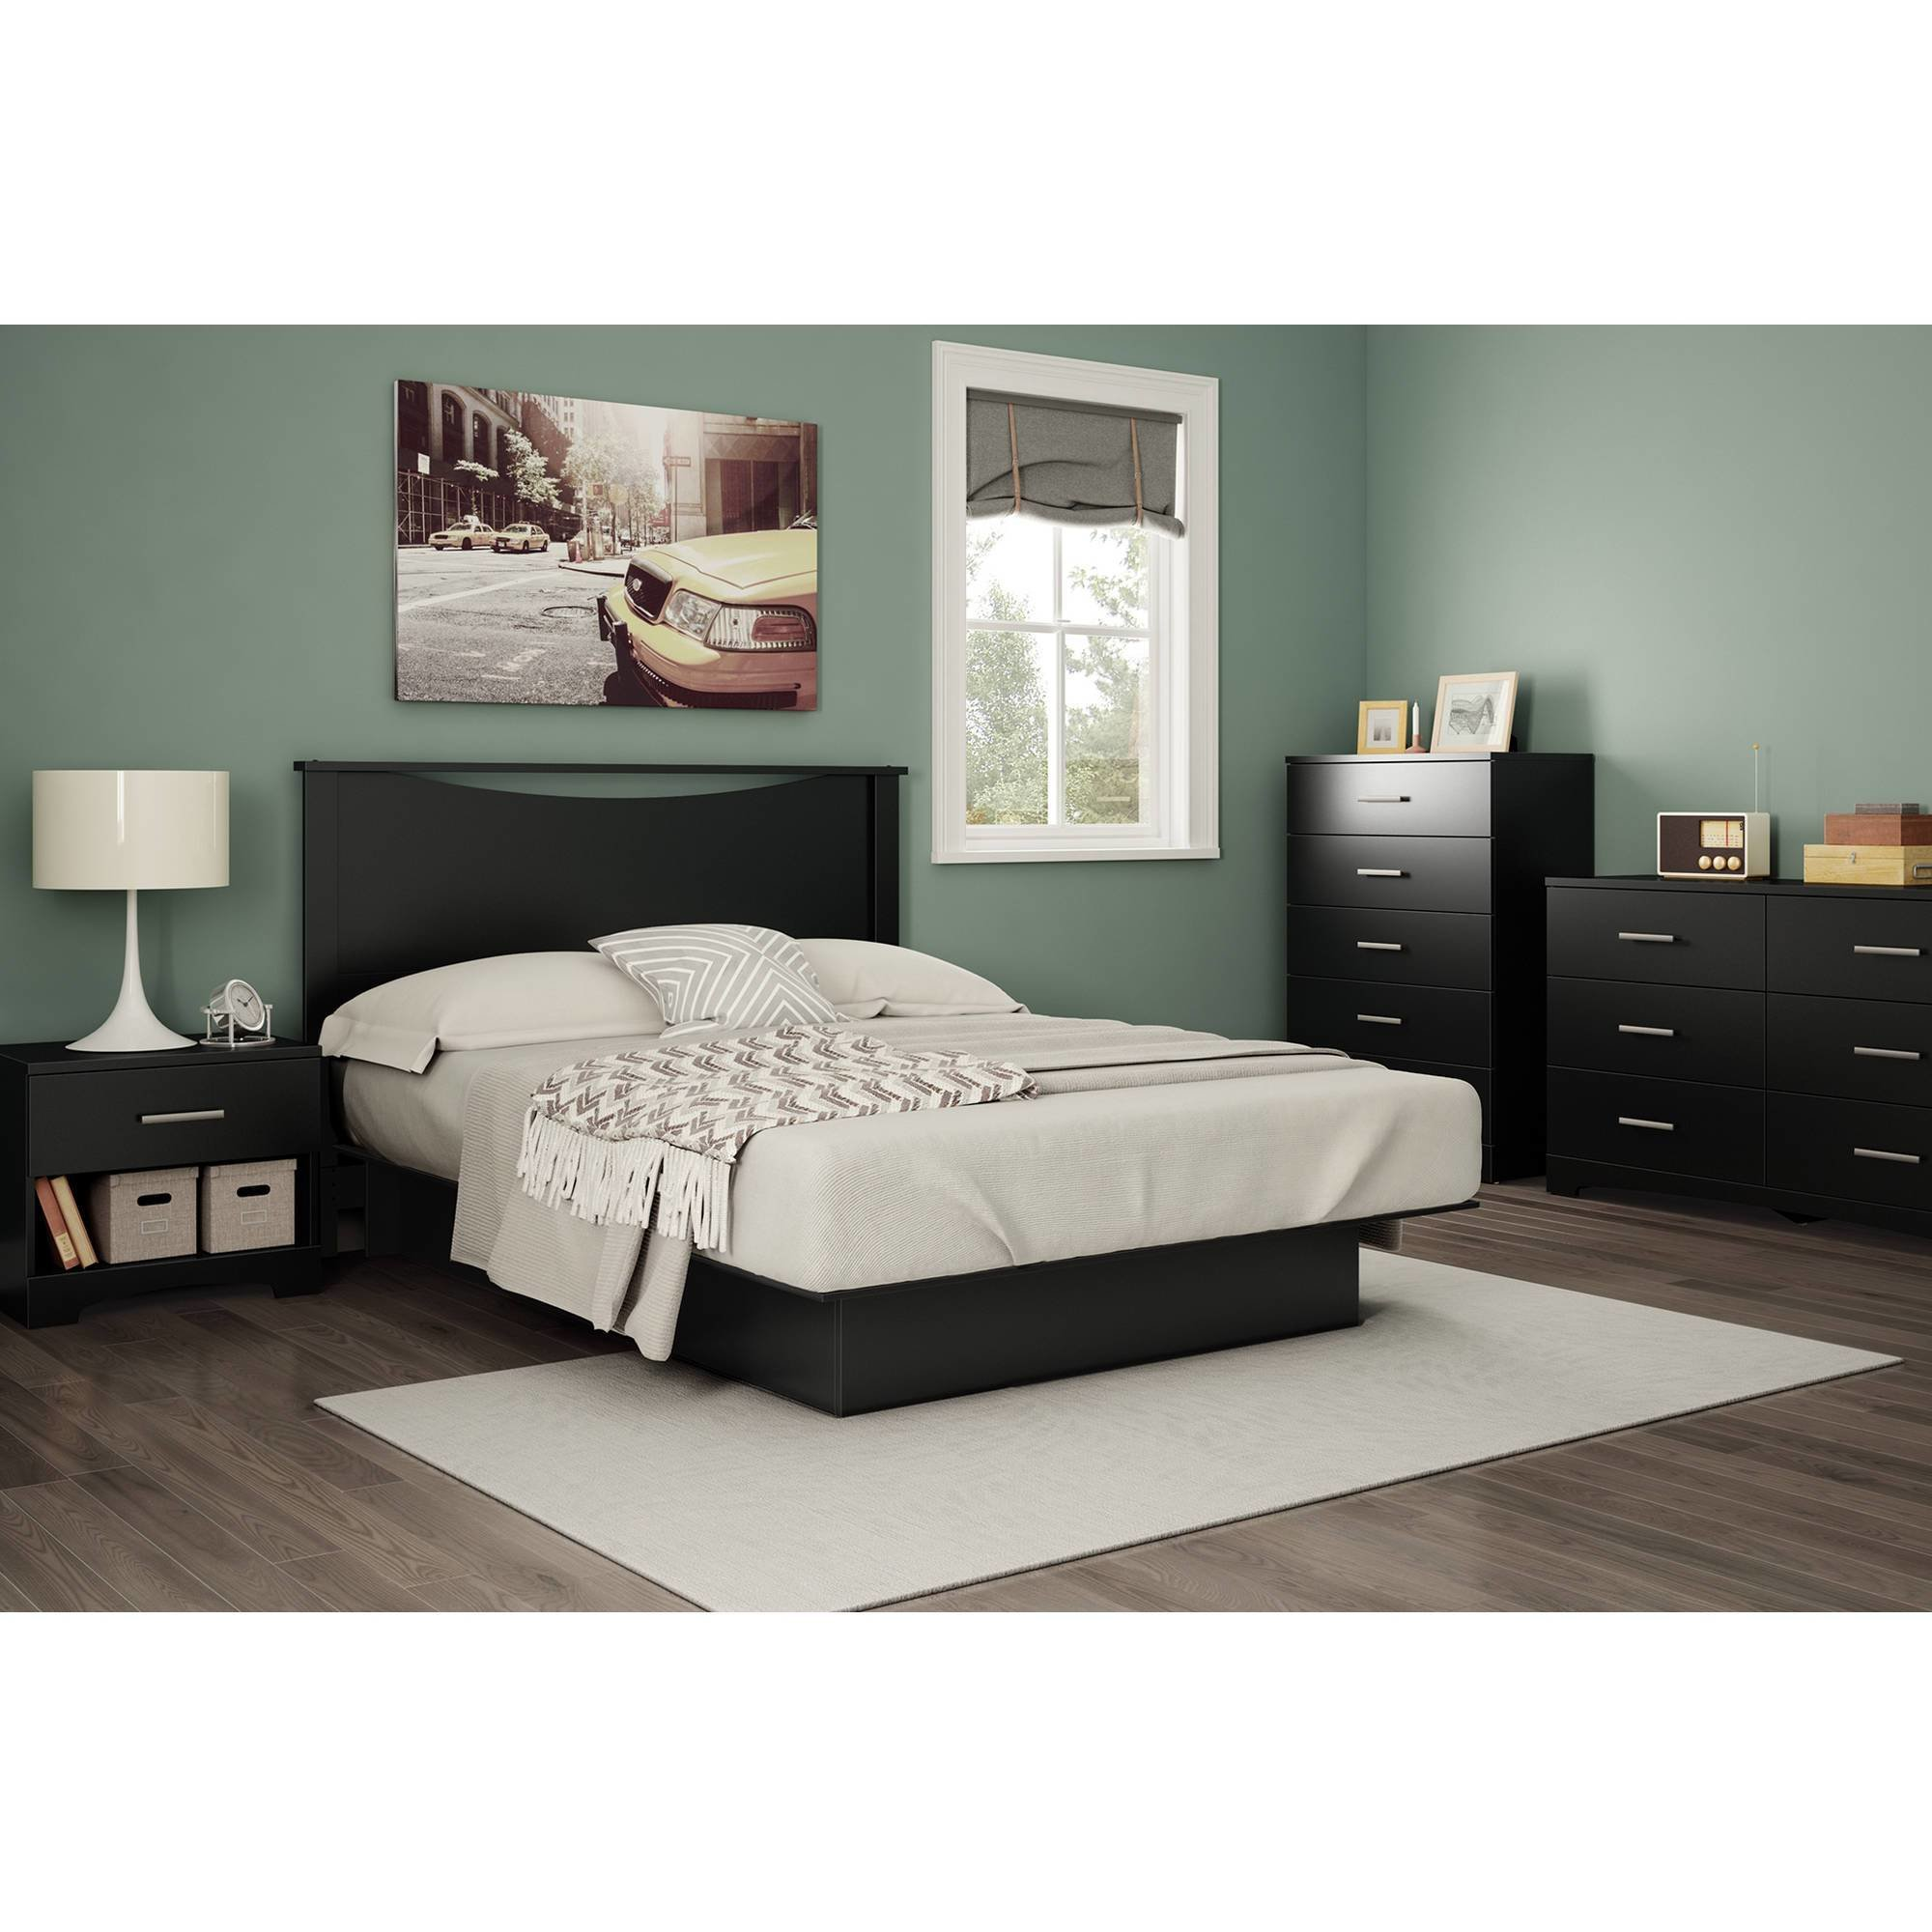 Best South Shore Gramercy Bedroom Furniture Collection With Pictures